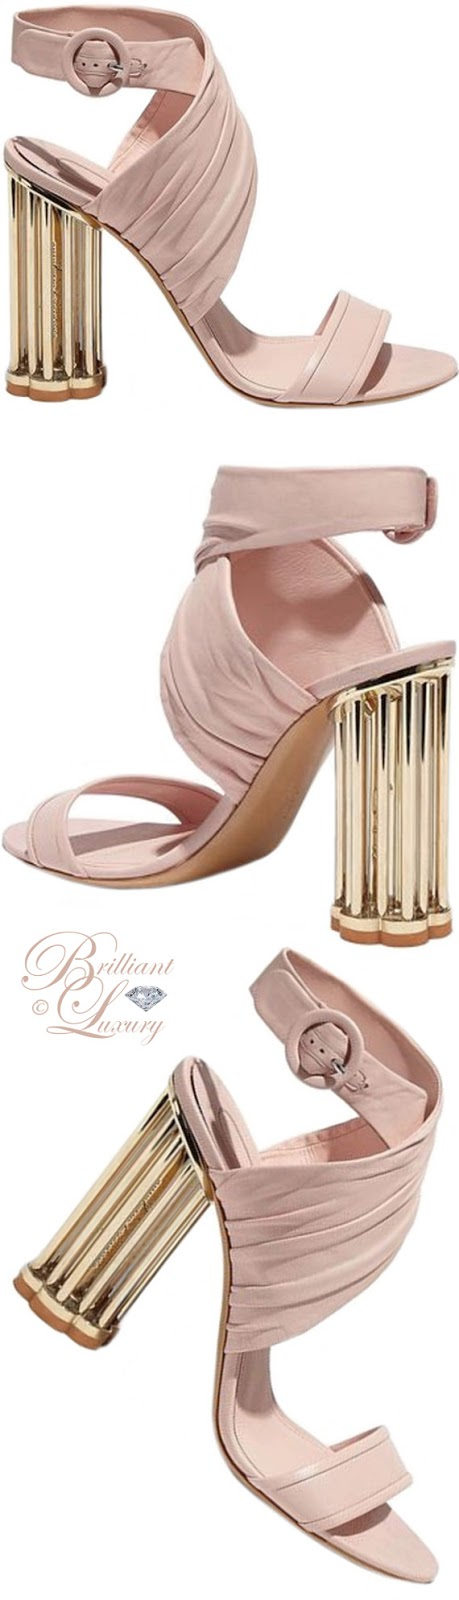 Brilliant Luxury ♦ Salvatore Ferragamo criss-cross sandals with cage flower heel in rose gold